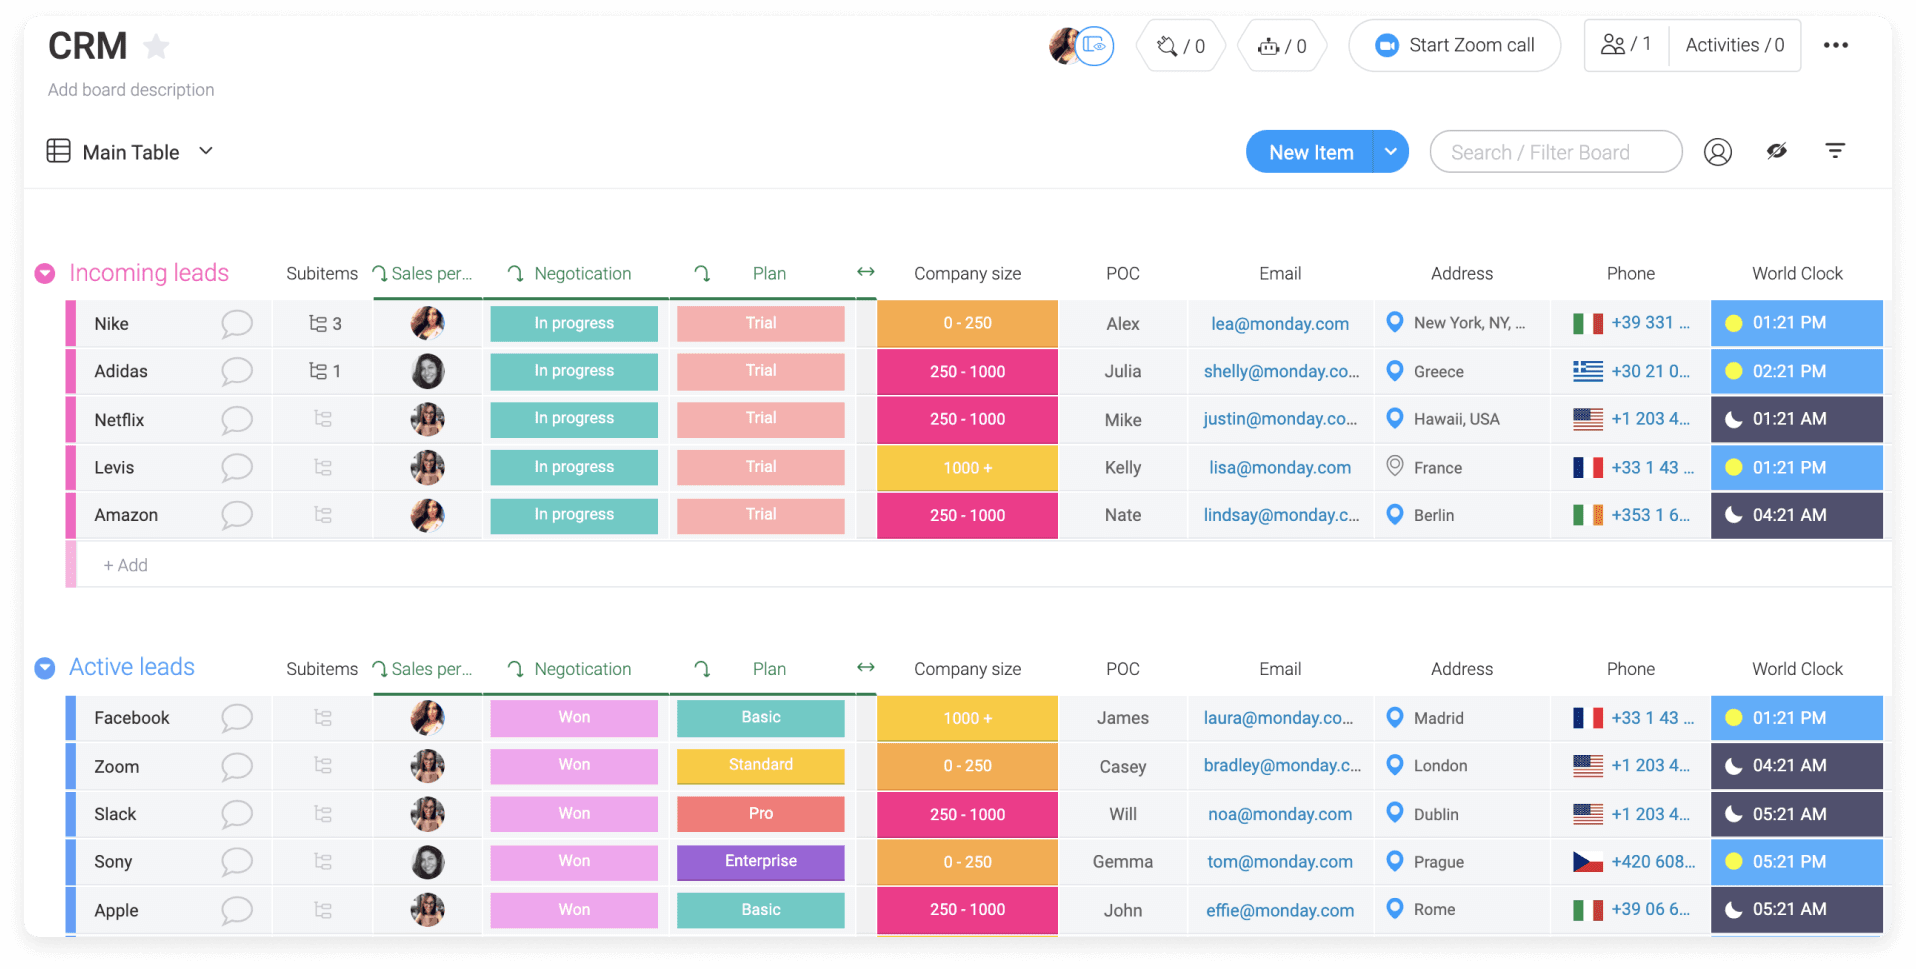 CRM template from Monday.com